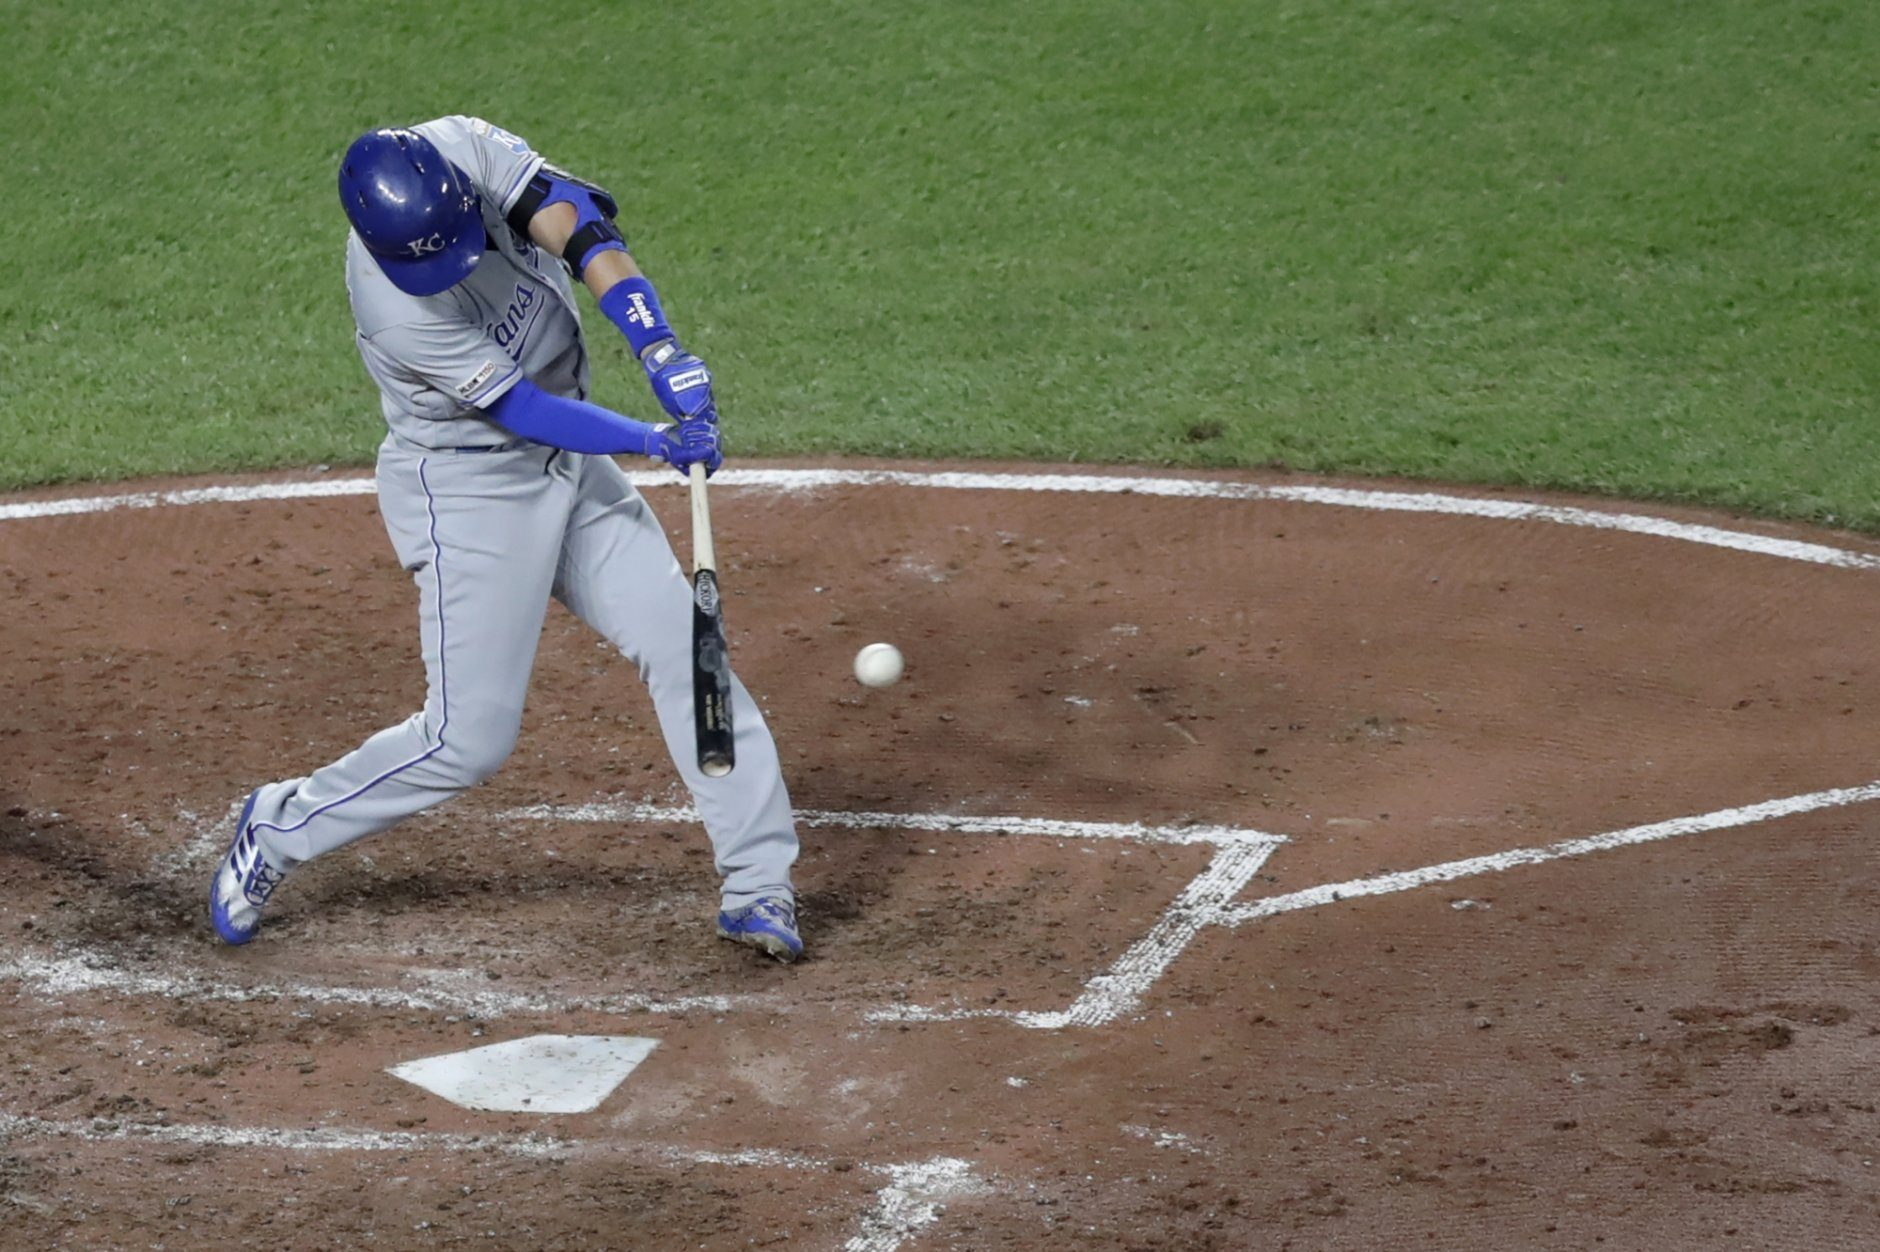 Kansas City Royals' Whit Merrifield singles off Baltimore Orioles starting pitcher John Means, not visible, during the sixth inning of a baseball game, Monday, Aug. 19, 2019, in Baltimore. Royals' Nicky Lopez scored on the play. (AP Photo/Julio Cortez)